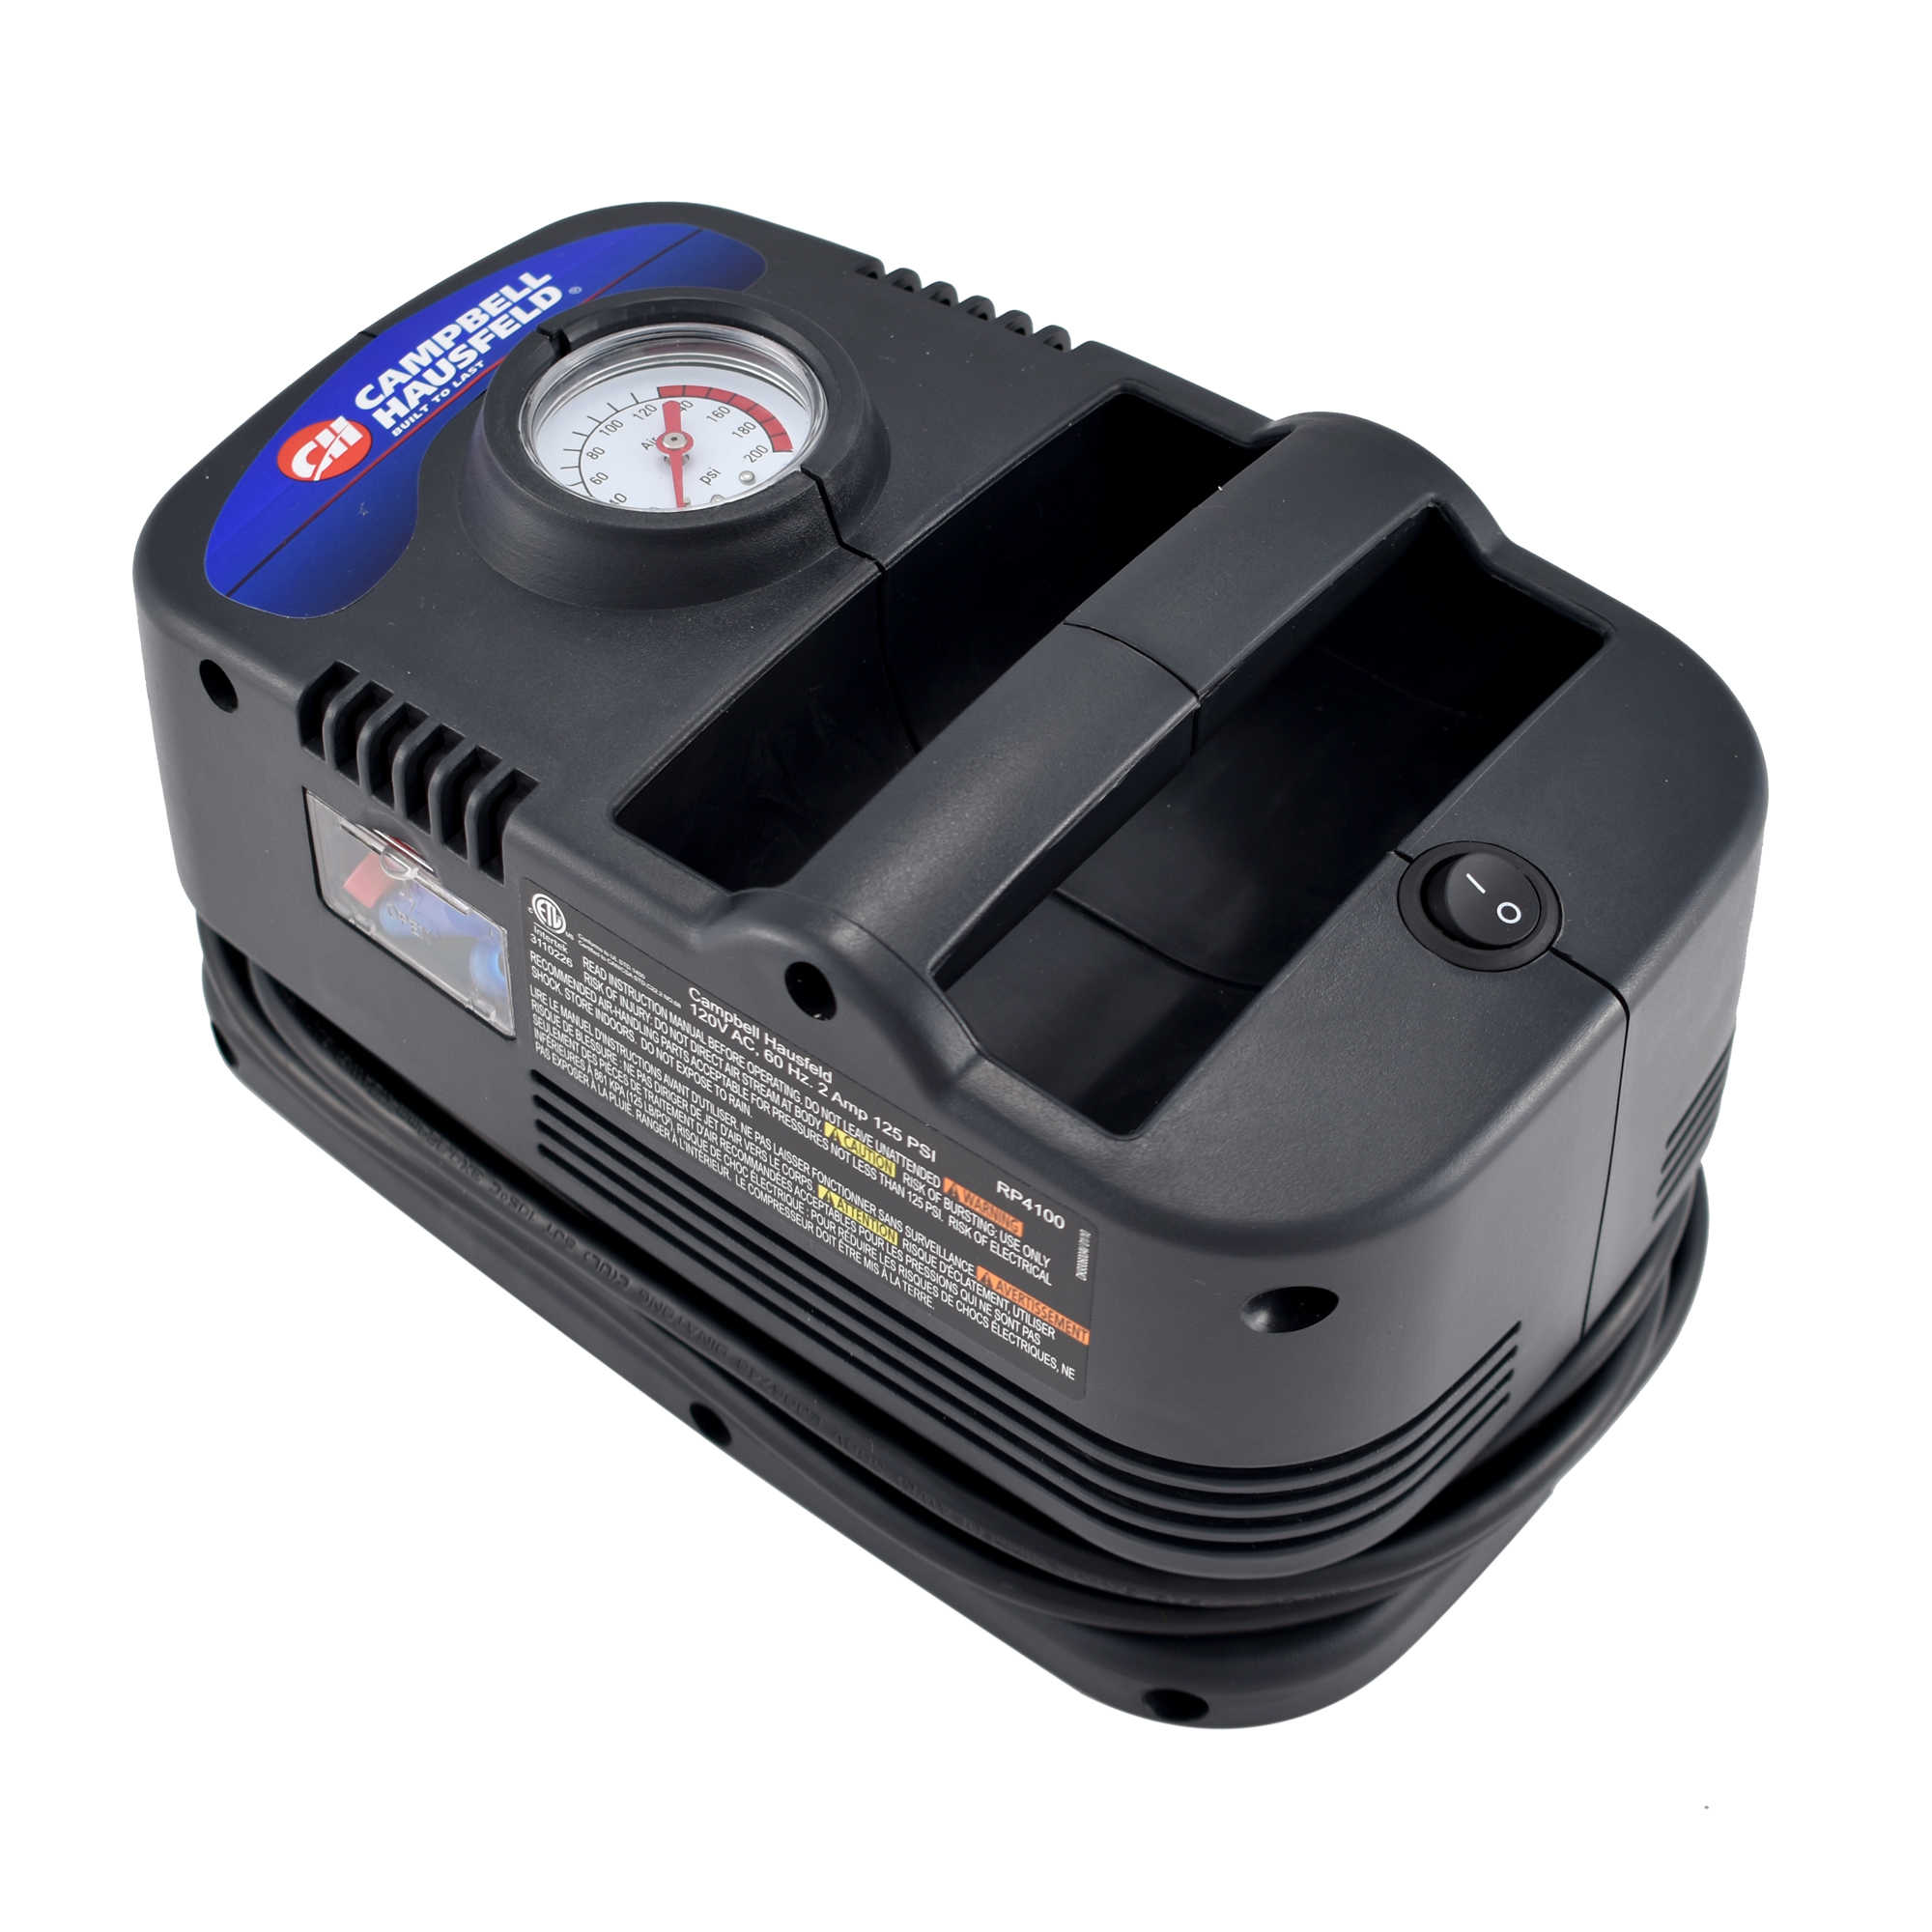 Campbell Hausfeld 120V Inflator with Gauge and Presta-to-Schrader Valve Adapter (RP410099AV)